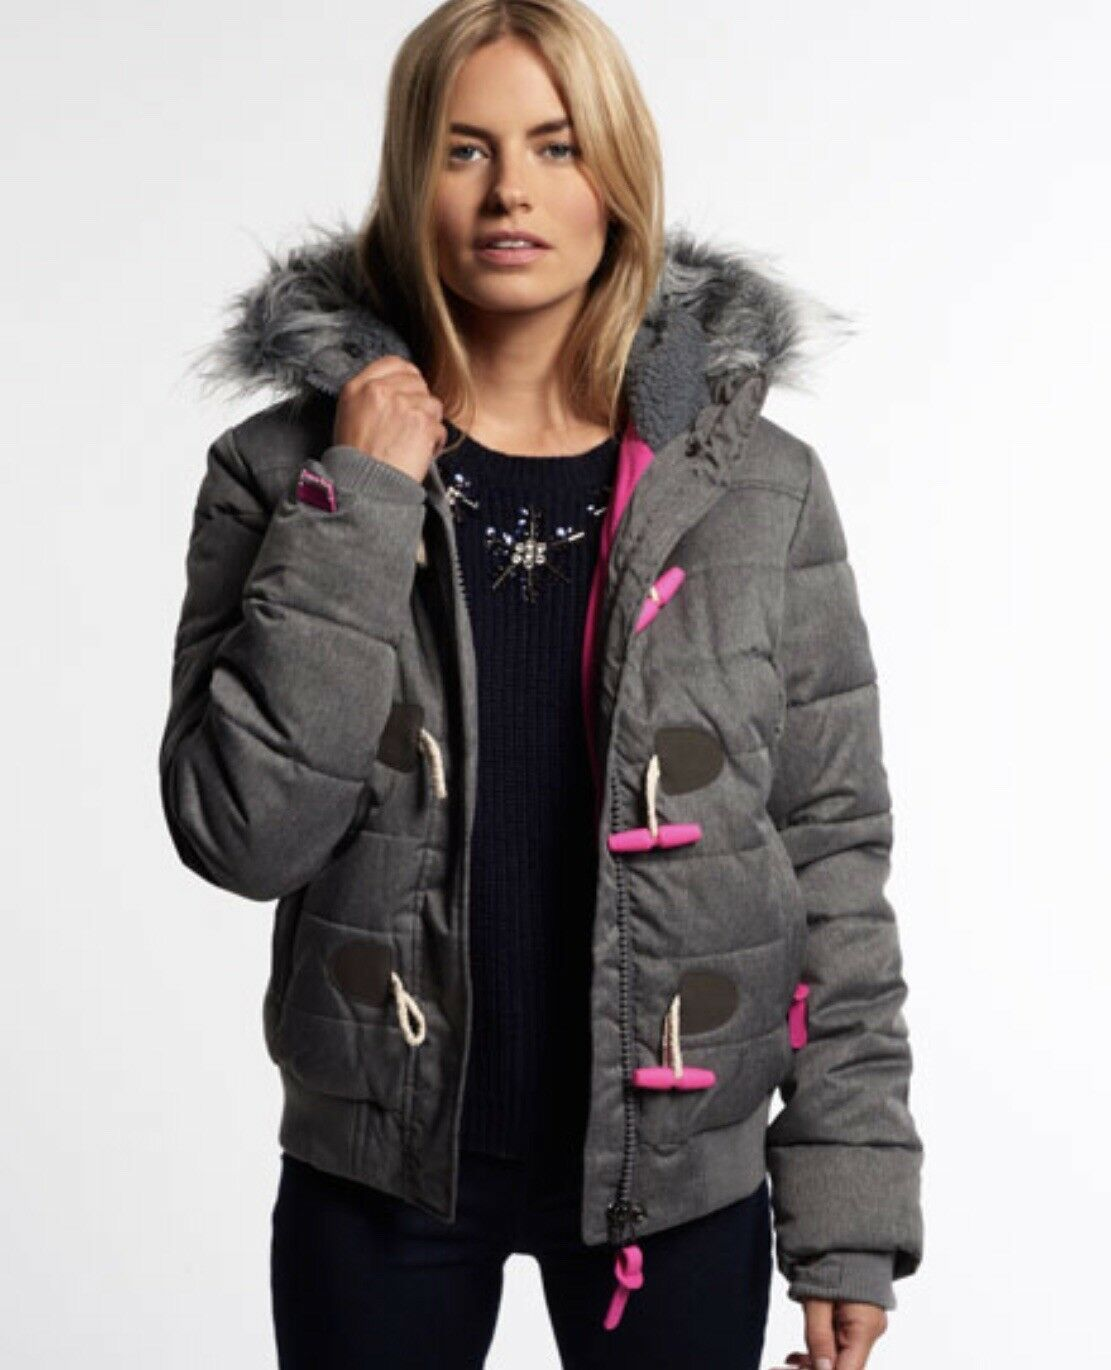 Superdry JPN Marl Toggle grau Puffer Jacket-grau Gr.M UK M US 8